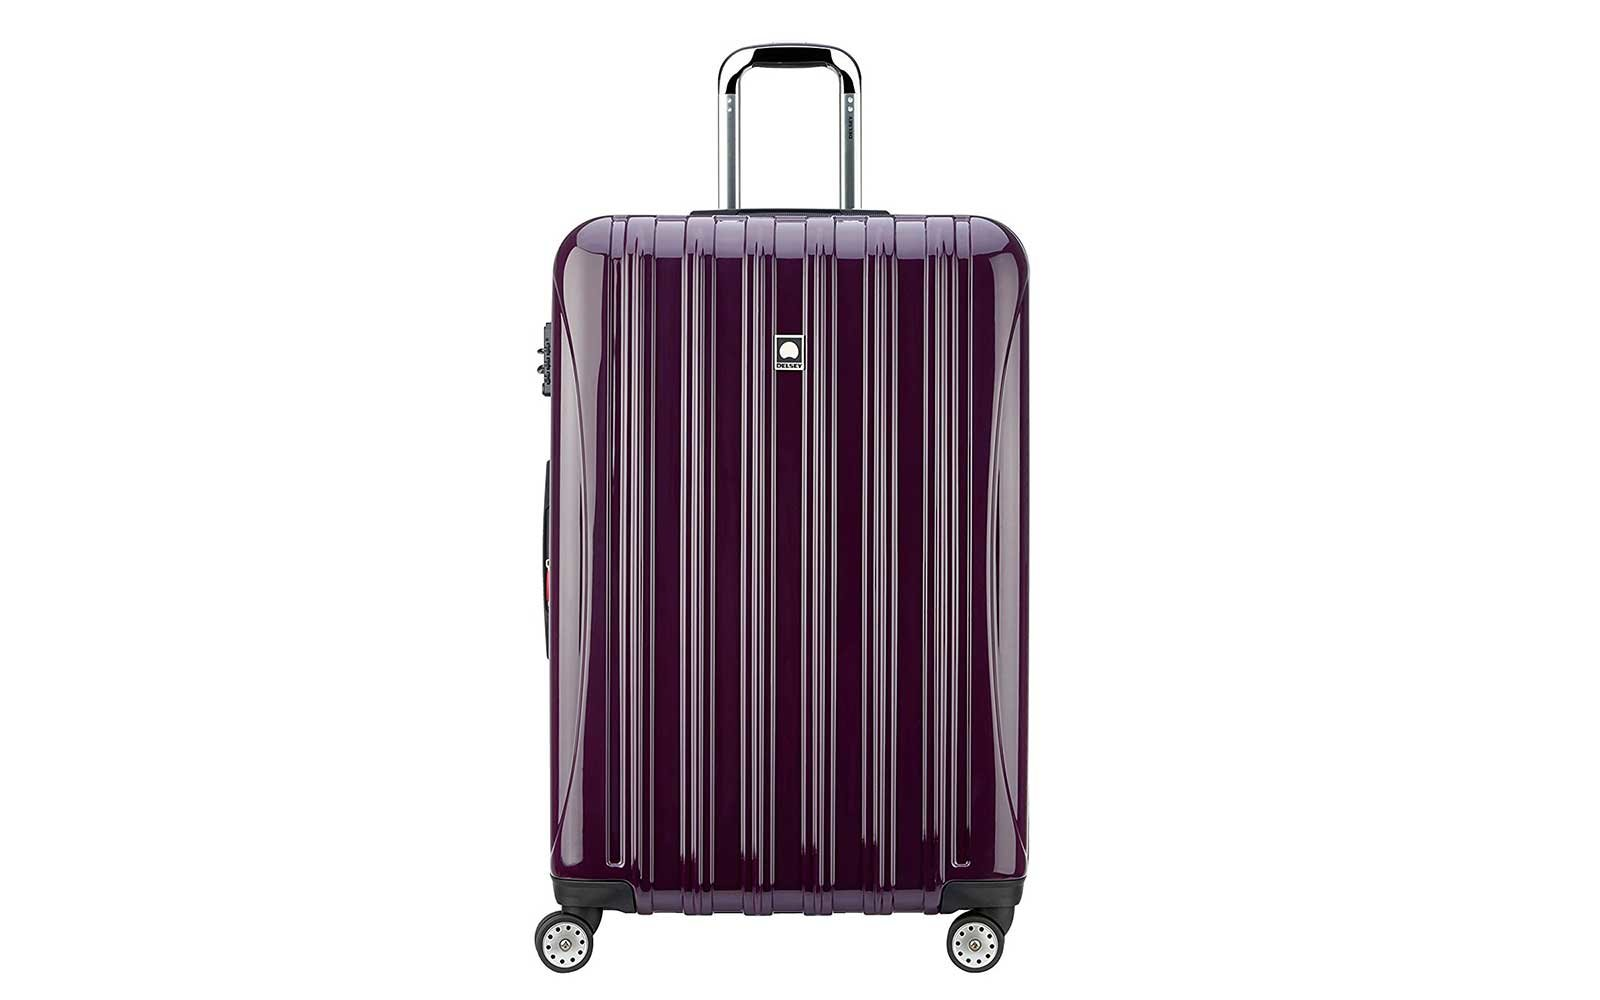 Delsey hard sided rolling luggage